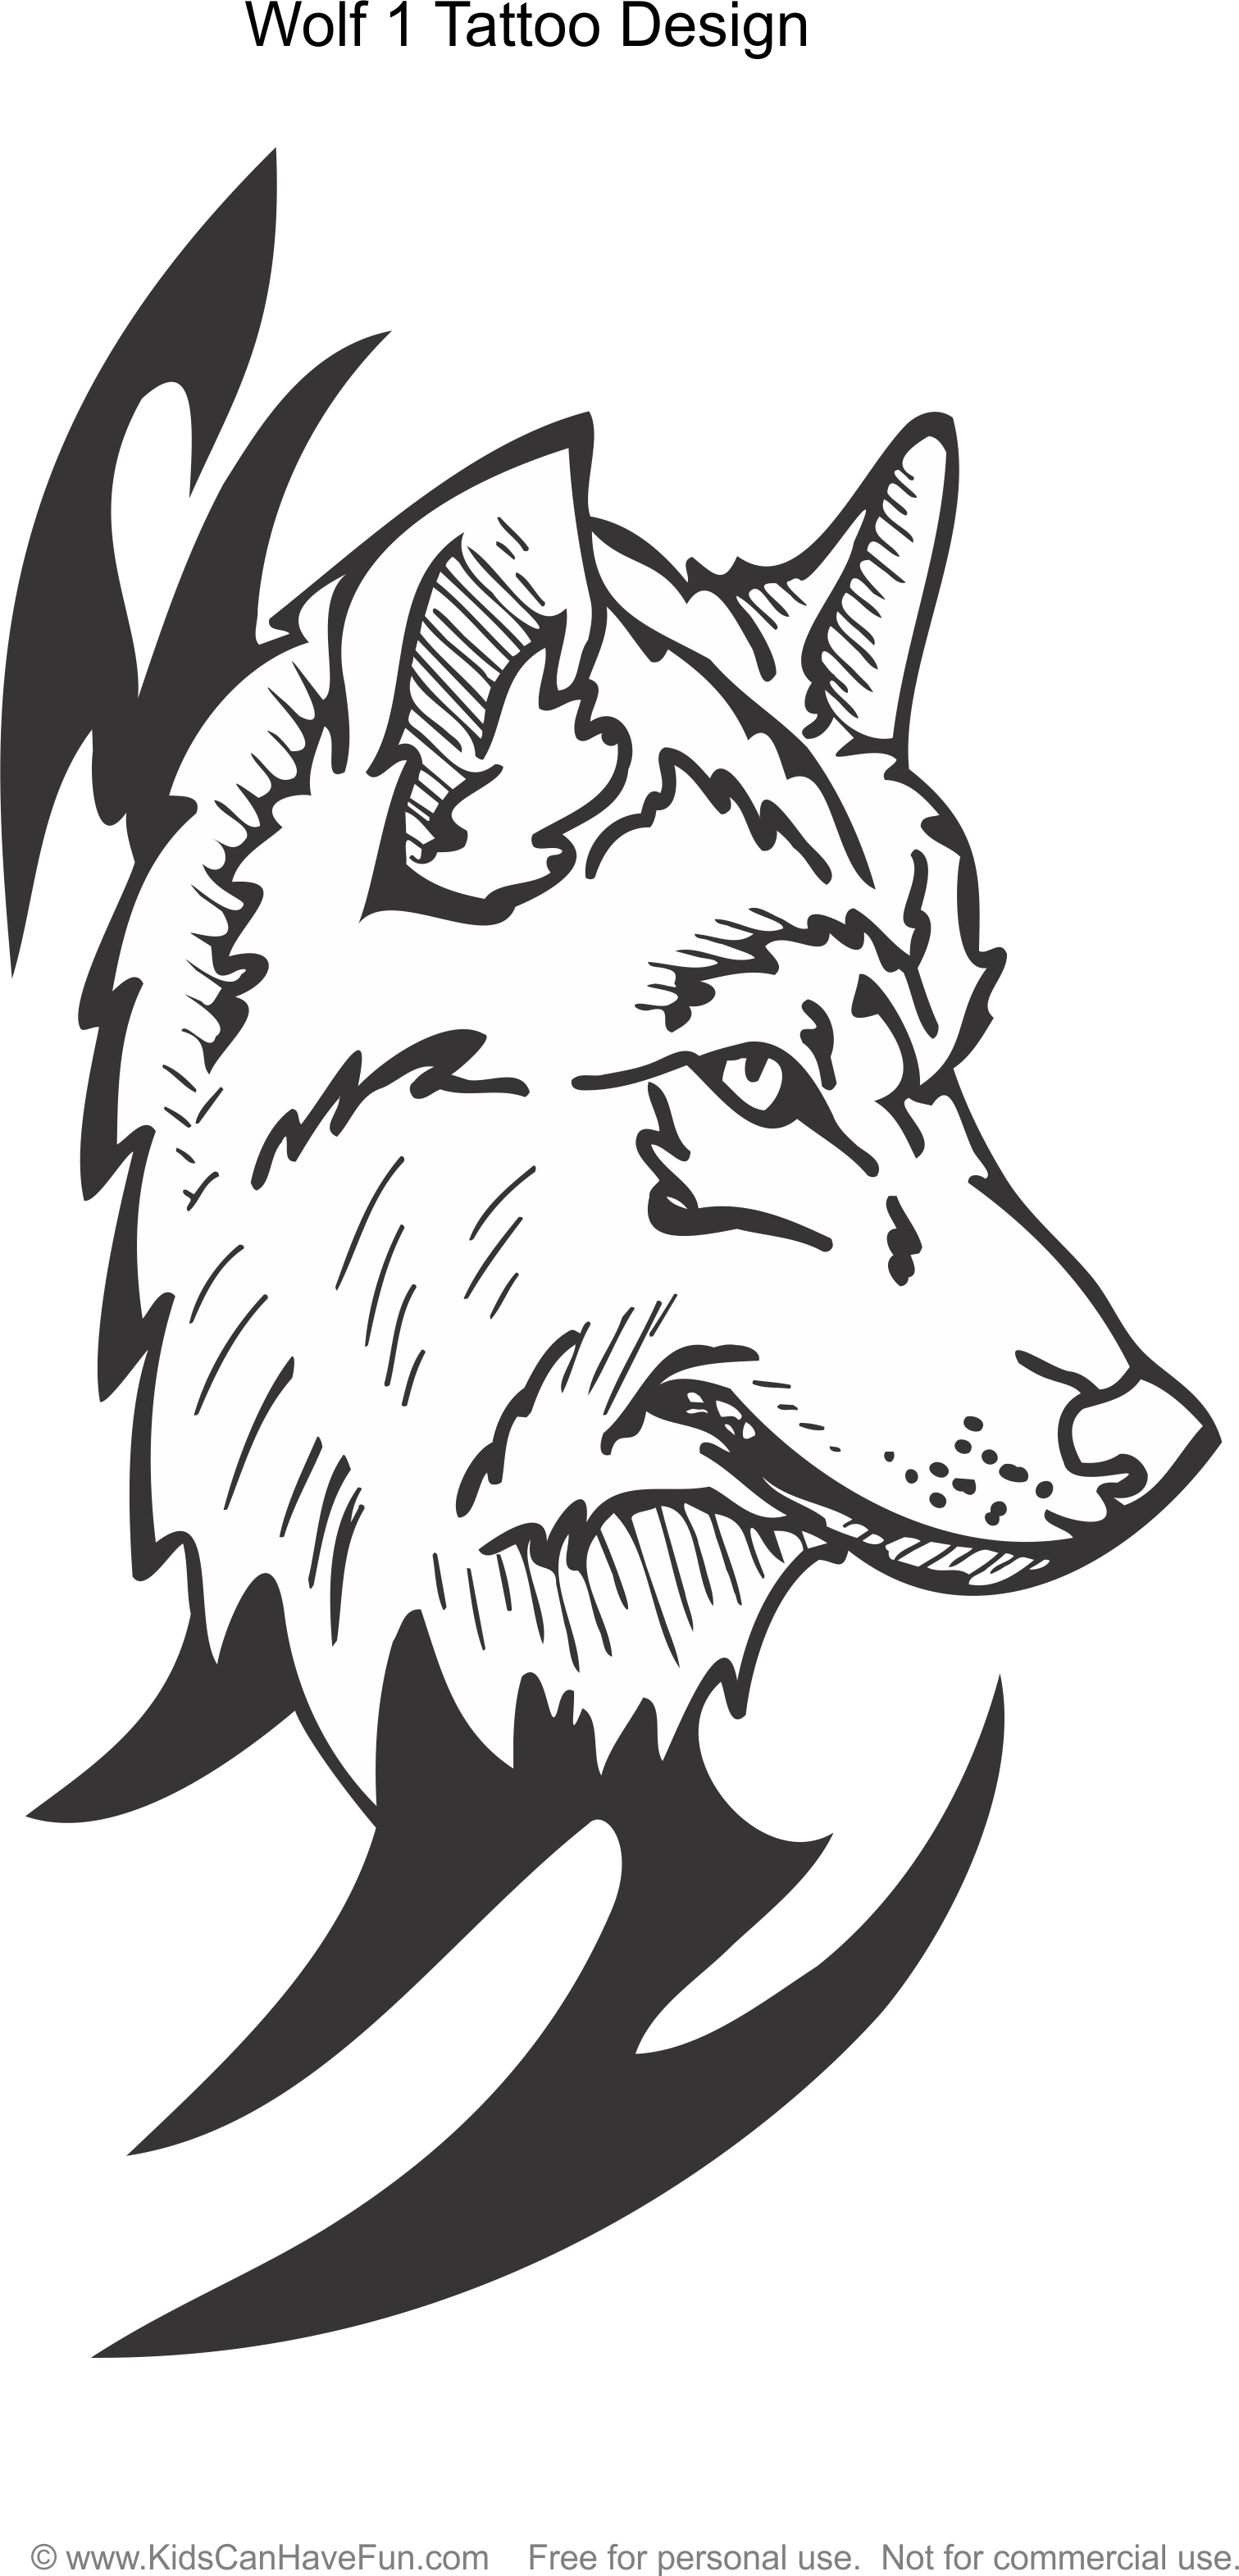 Wolf 1 Tattoo Design coloring page http//www